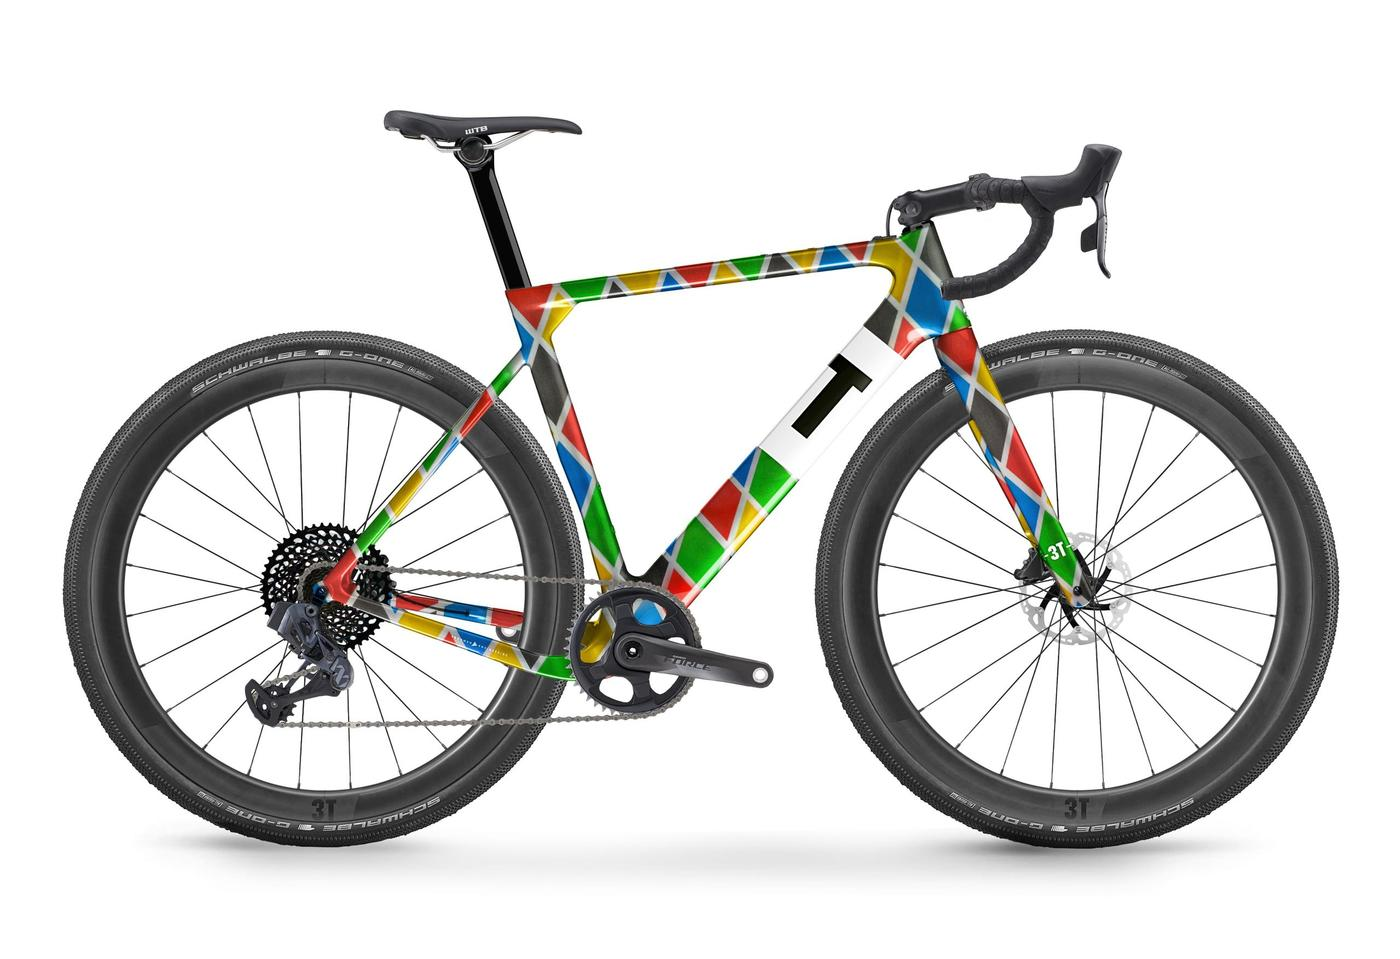 3T Gets Back to Work and Raffles Off a Harlequin Exploro Arlecchino